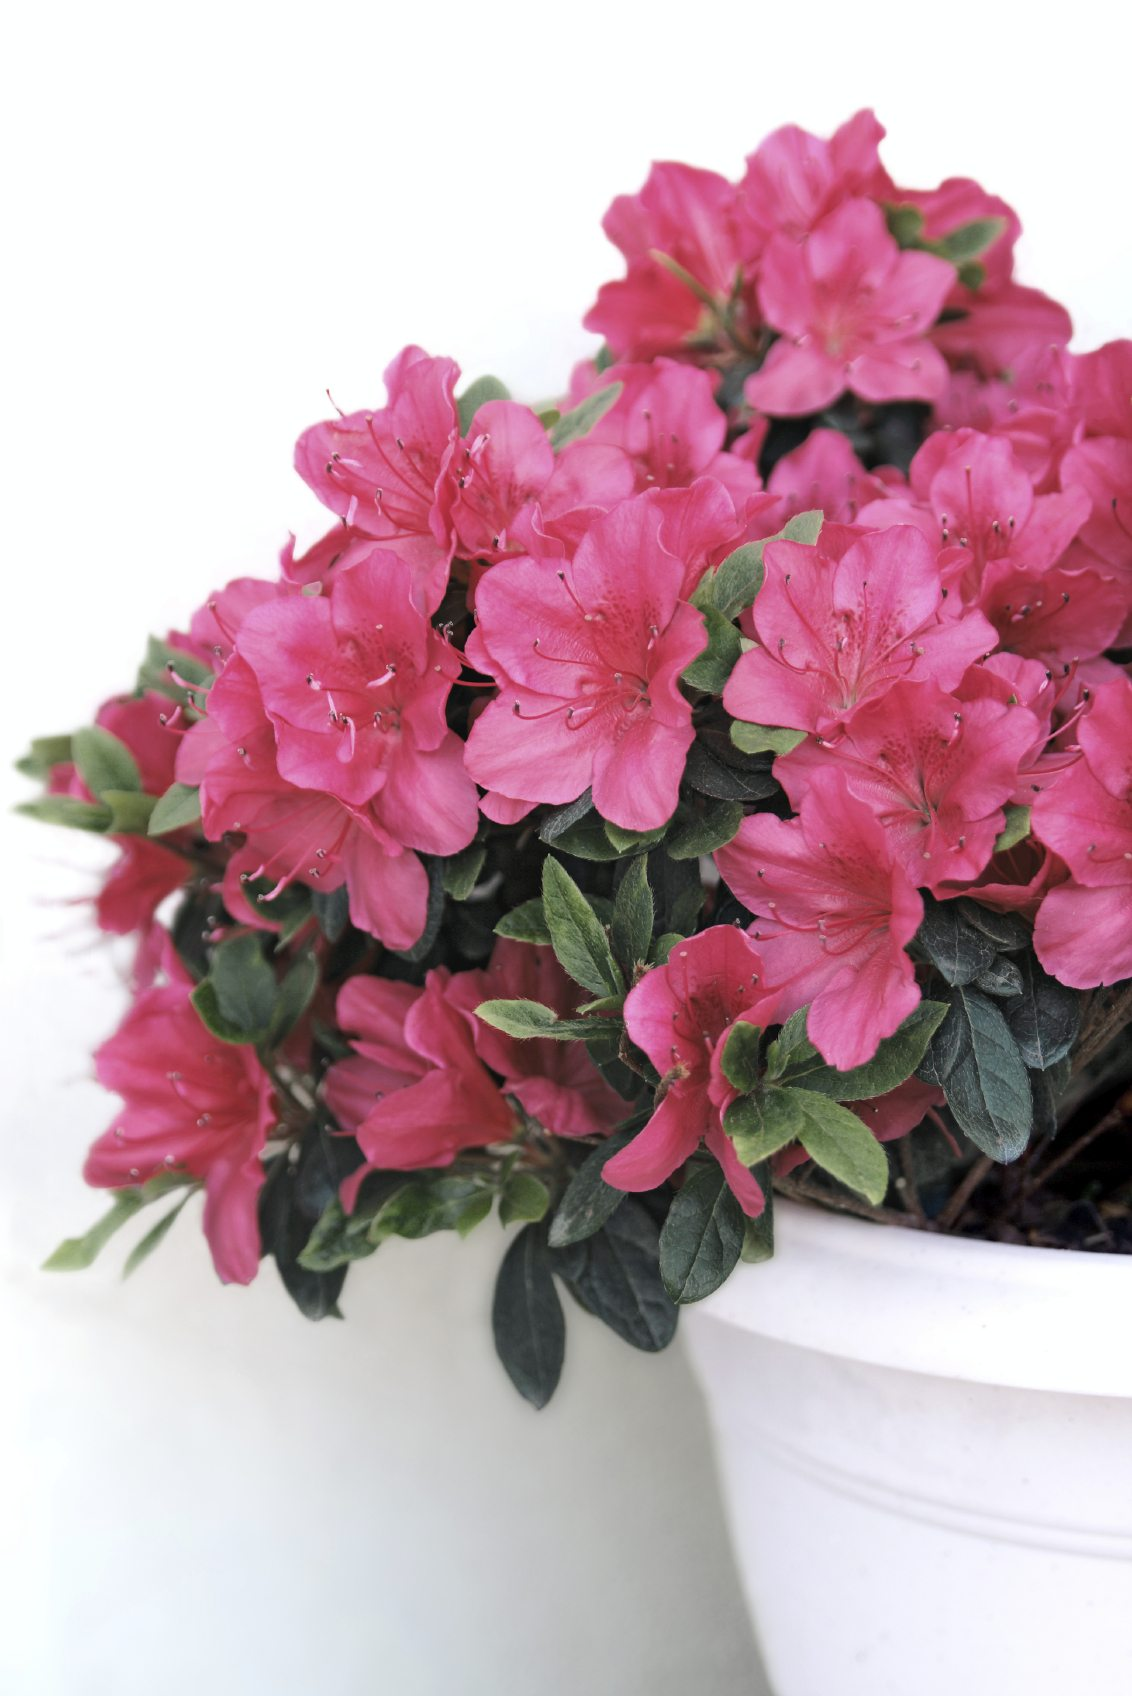 How To Care For Azalea In Planters